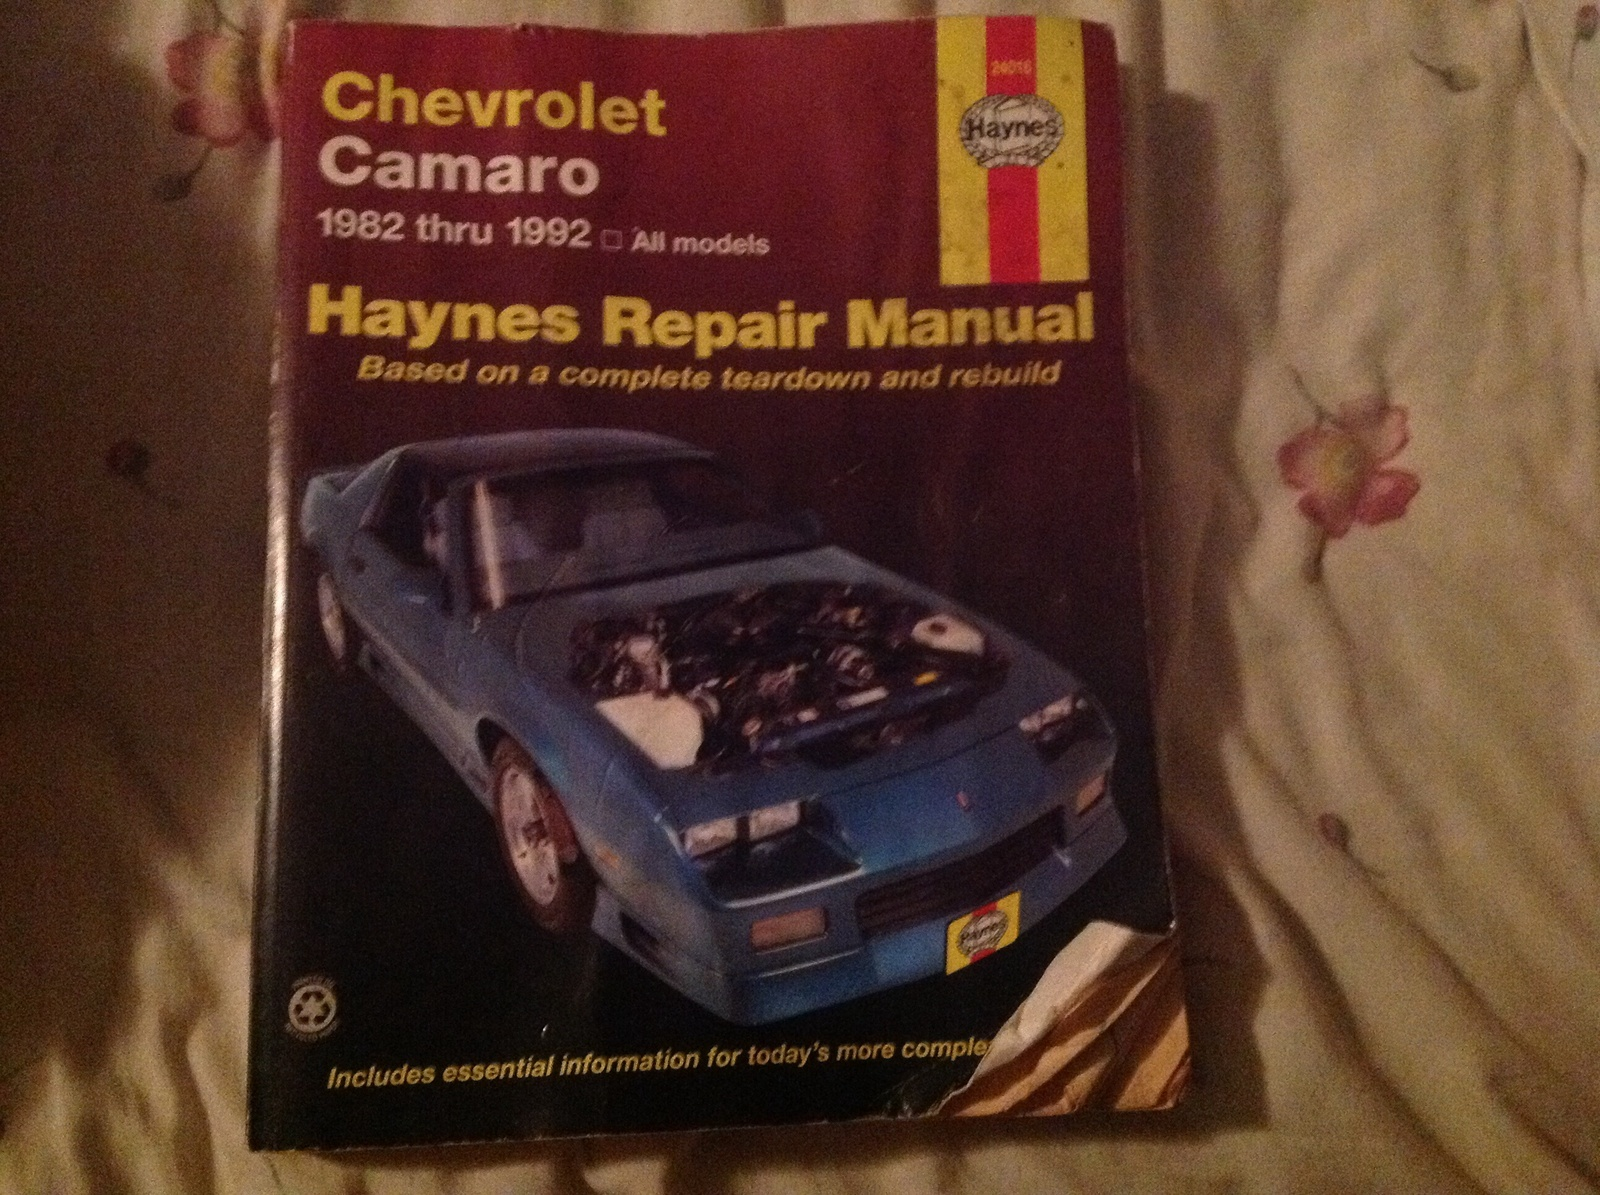 Chevrolet Camaro Questions 1988 Irocz28 Not Getting Fuel 1970 Wiring Diagram Haynes 1 People Found This Helpful